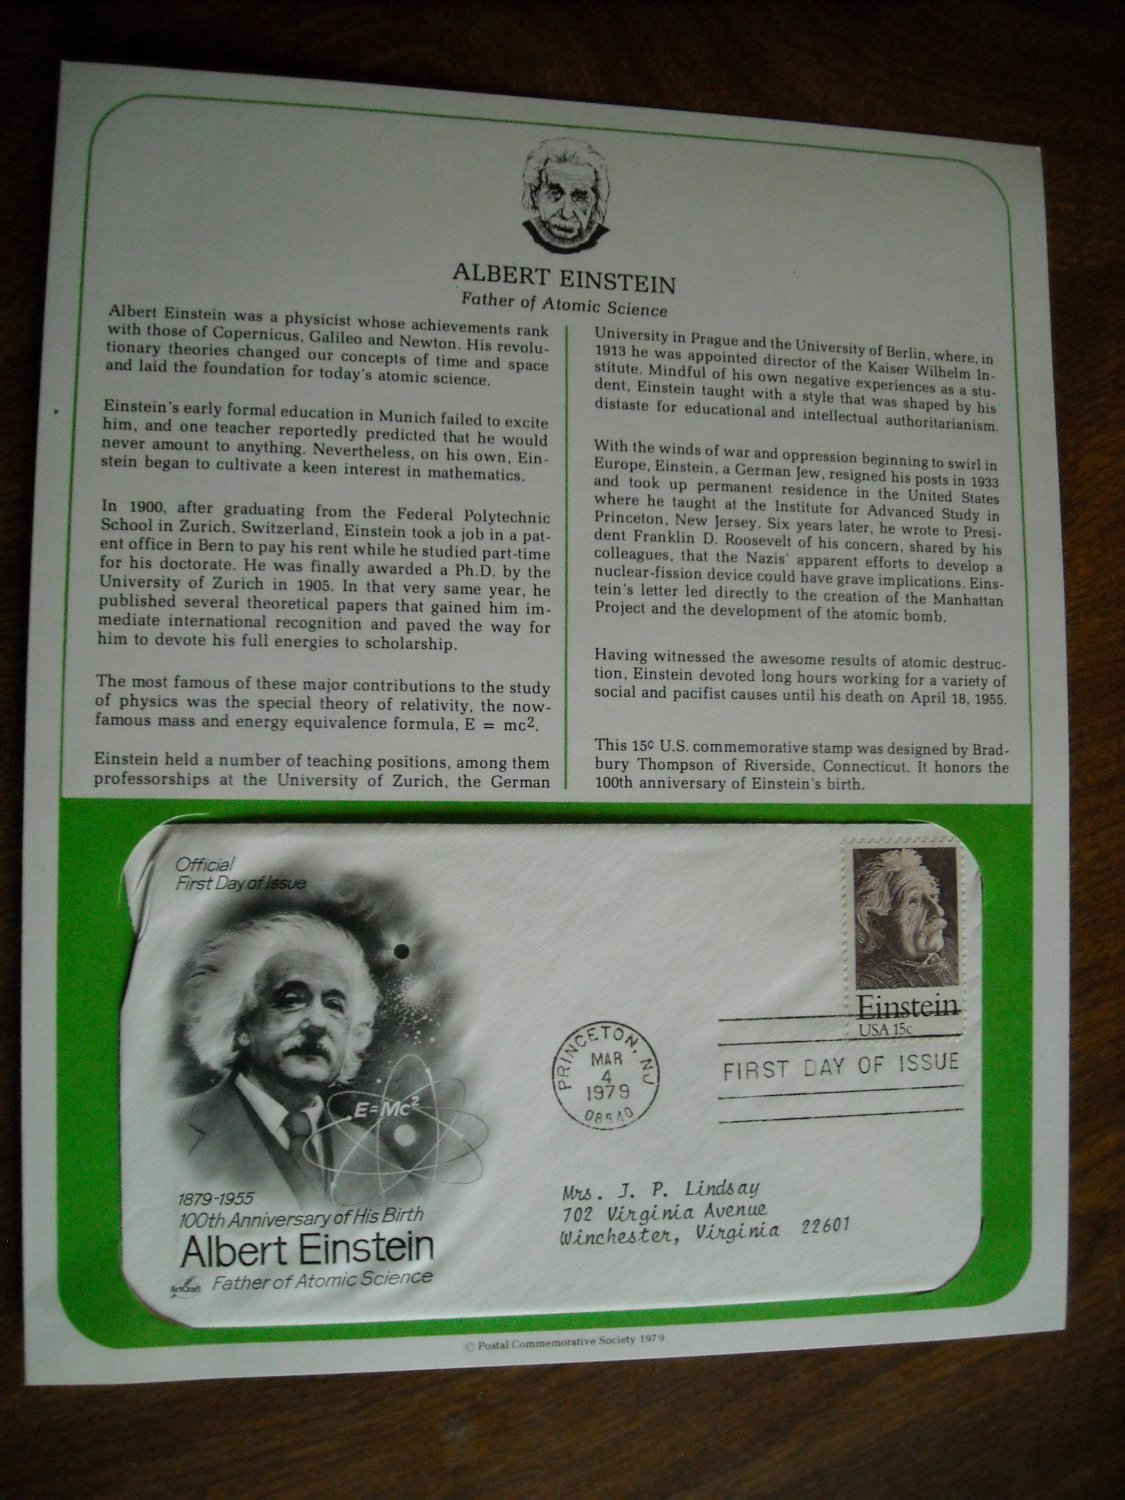 albert einstein essay 4 Albert einstein was one of the most famous scientists of the 20th century here, are a few things about his life you might like to know he was born on 14th march, 1879 in germany to a businessman father.